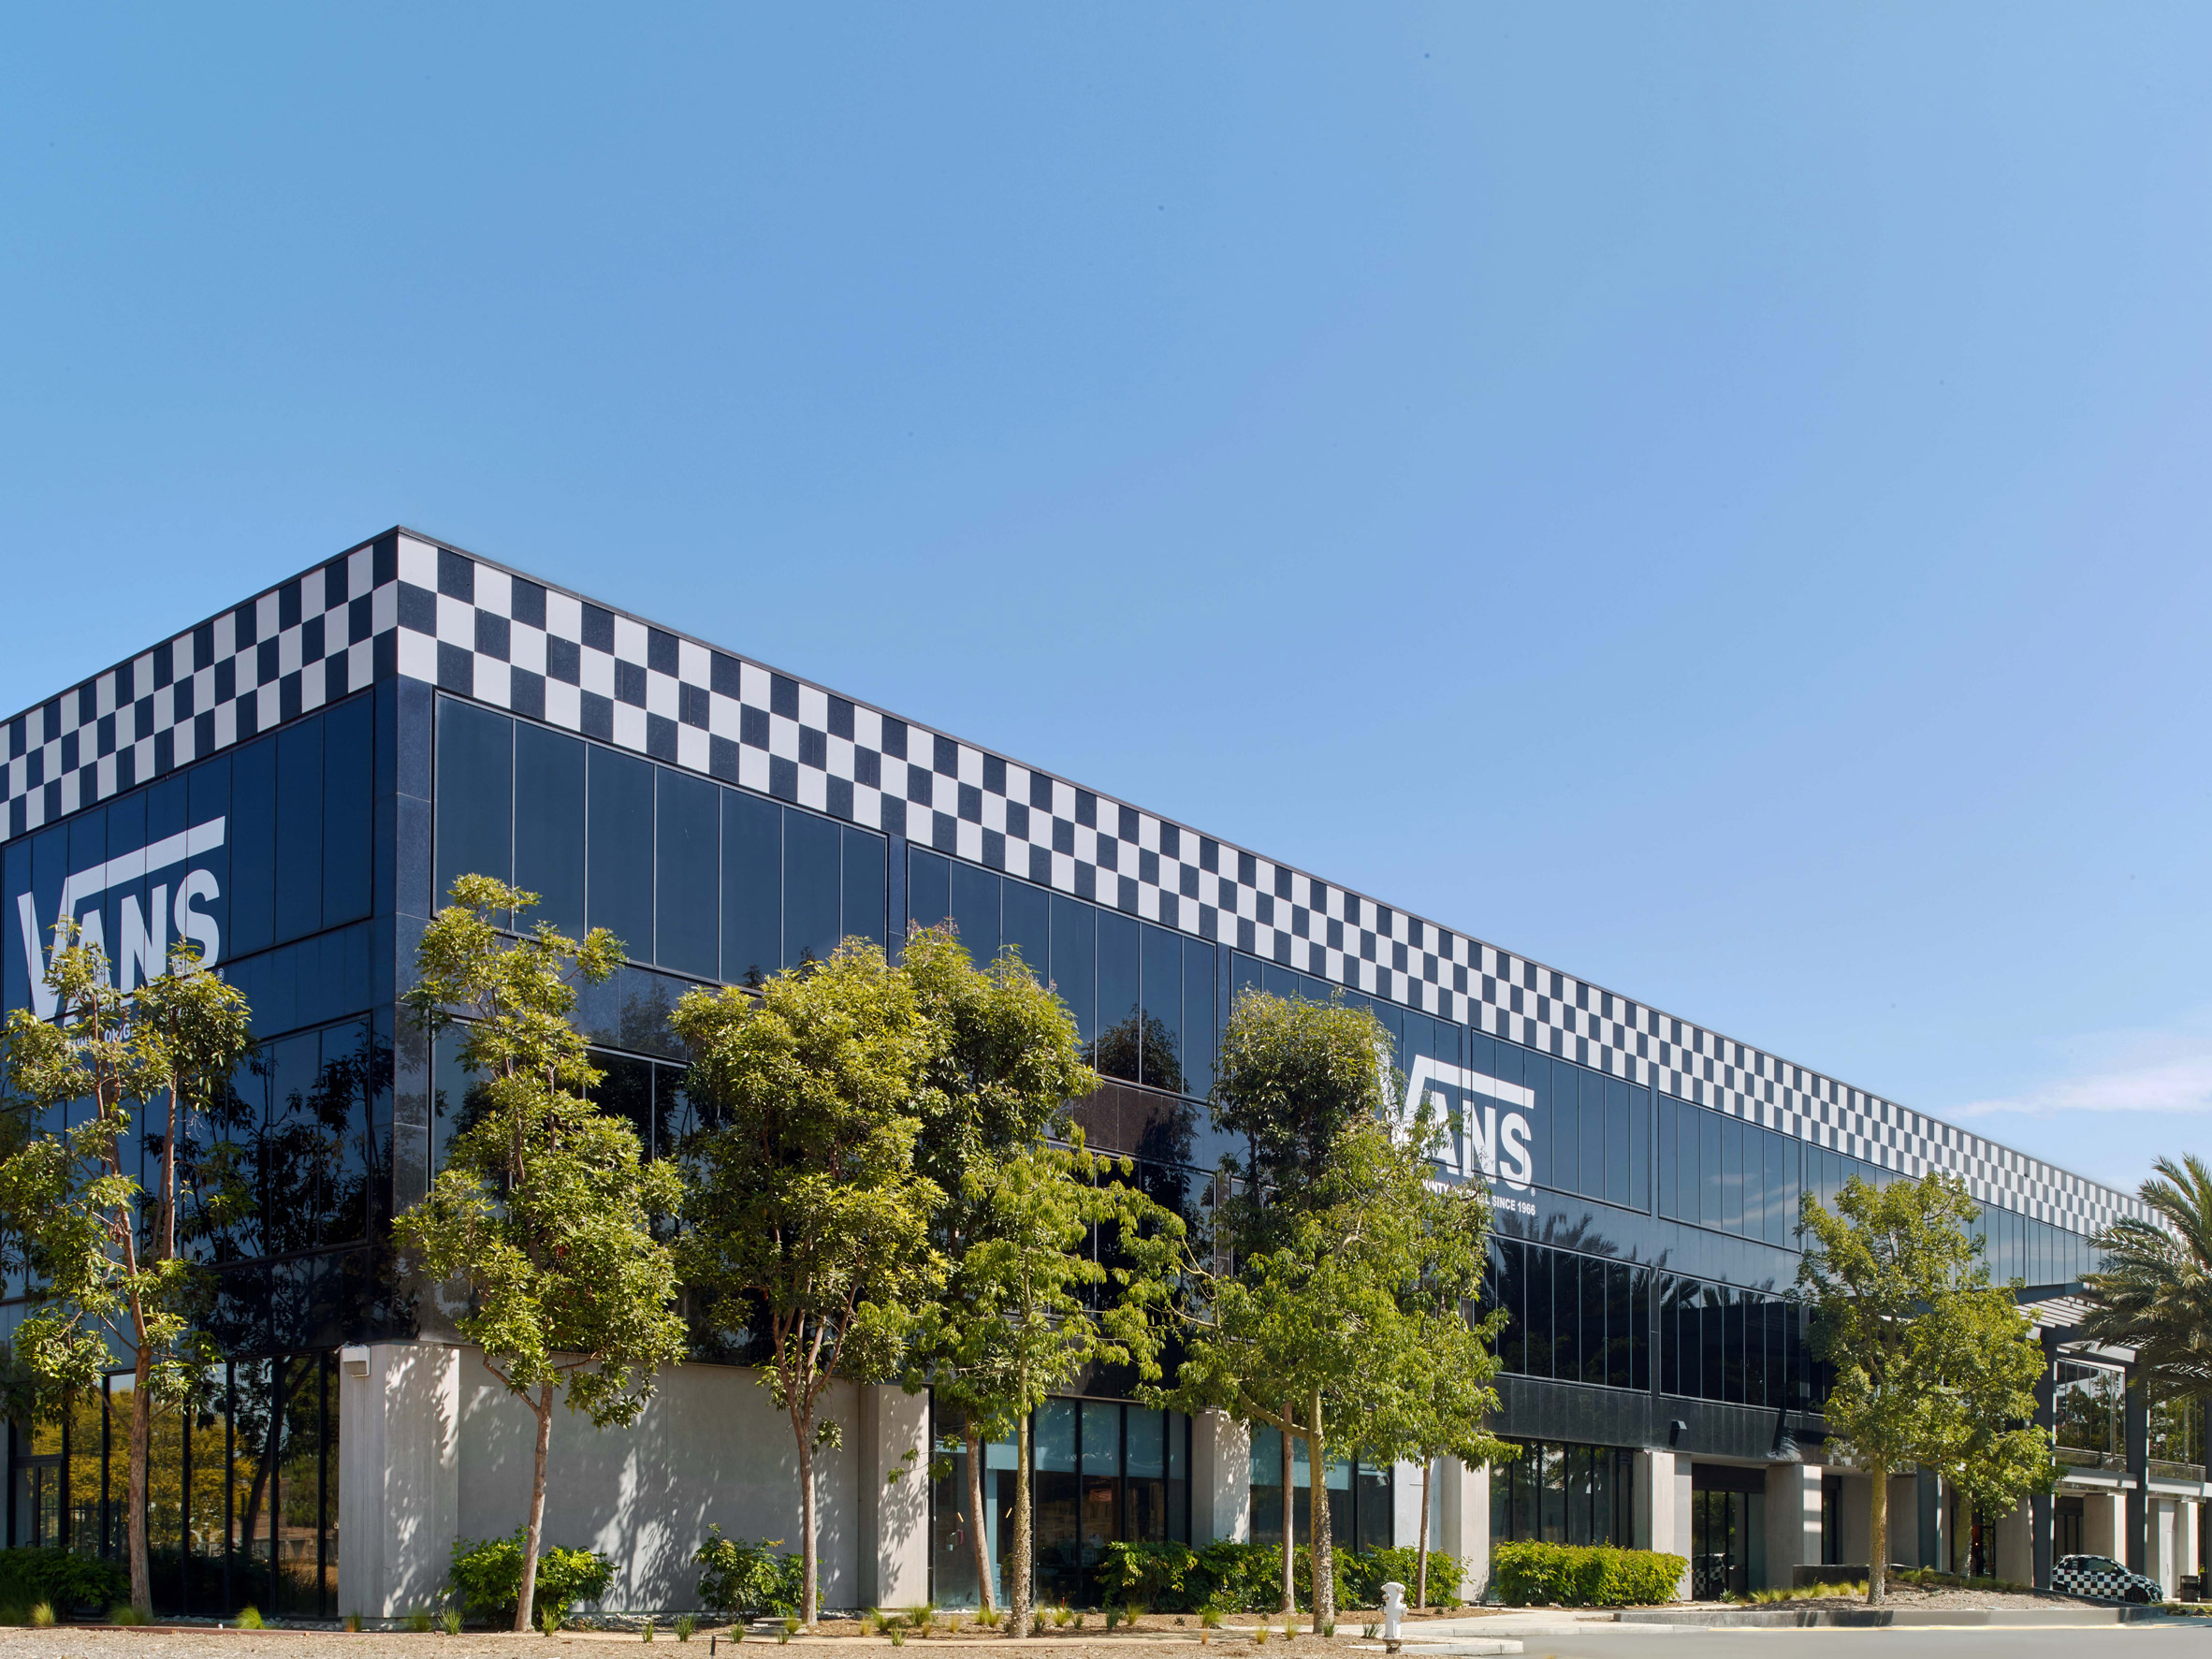 5519a41bb3 Vans headquarters by Rapt Studio nods to California street culture –  Architectural Autocad Drawings